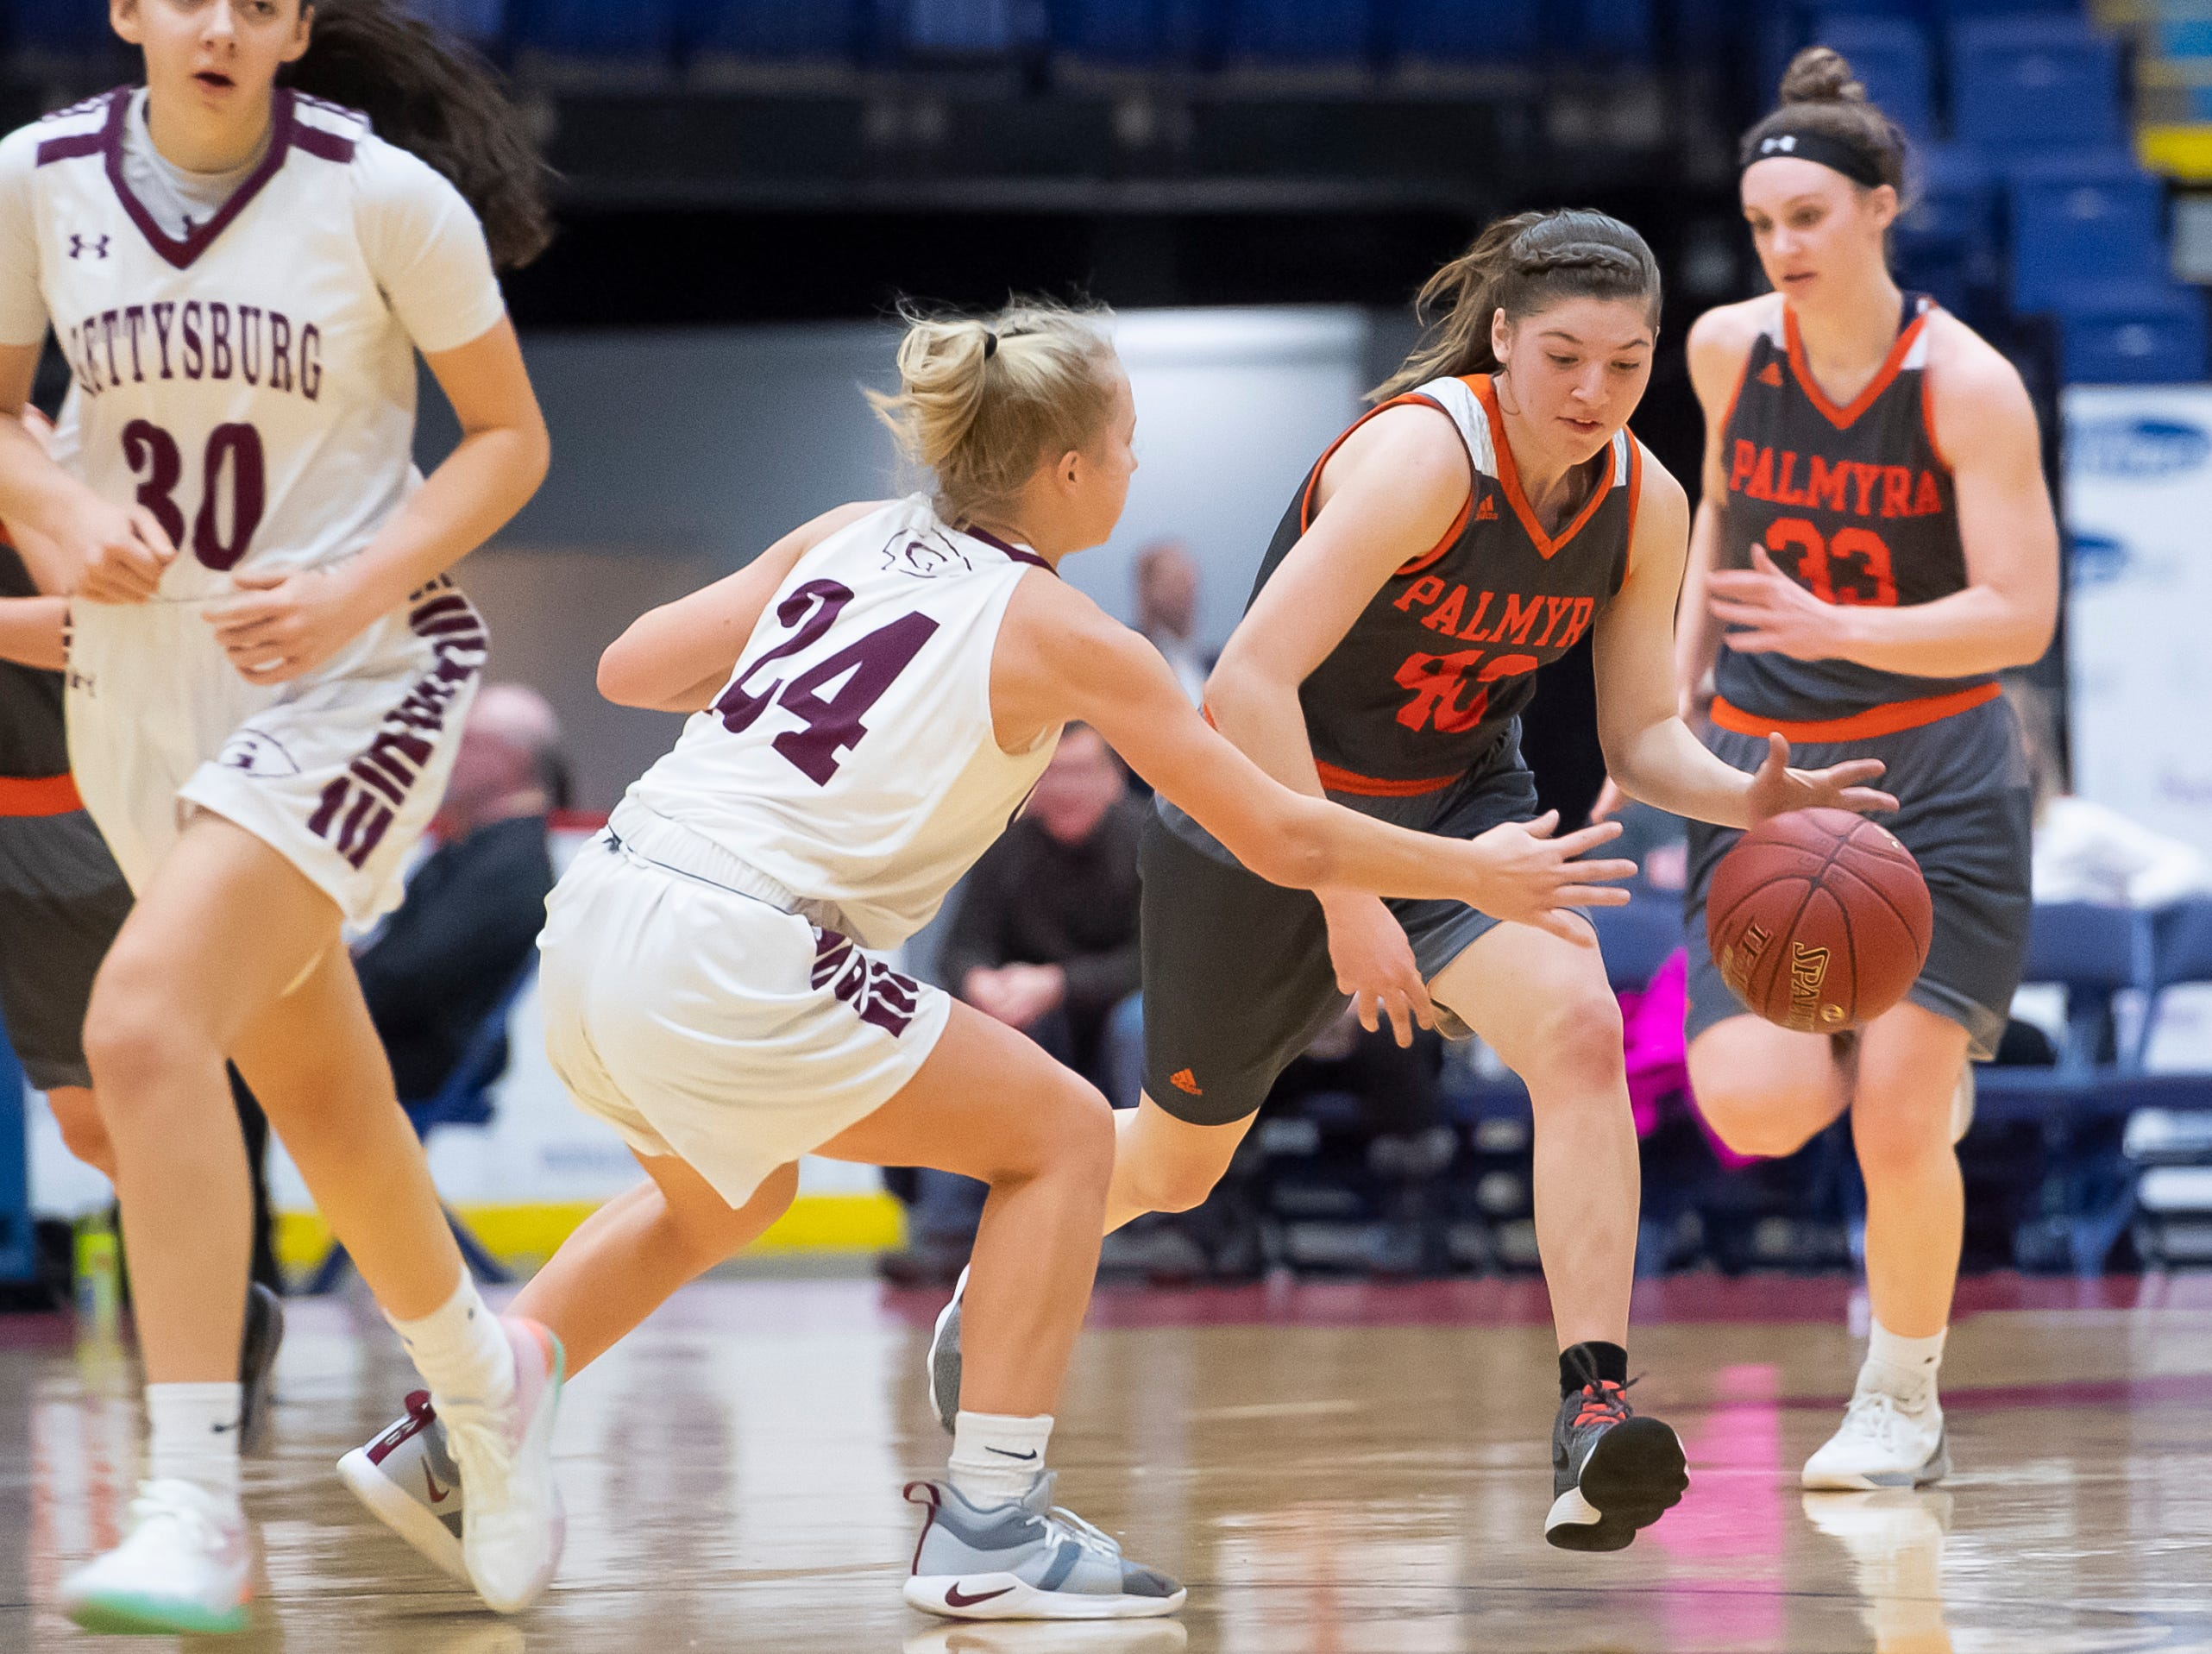 Palmyra's Katelyn Becker dribbles down the court against Gettysburg's Anne Bair during the District 3 5A girls championship game at Santander Arena in Reading, Pa., Friday, March 1, 2019.